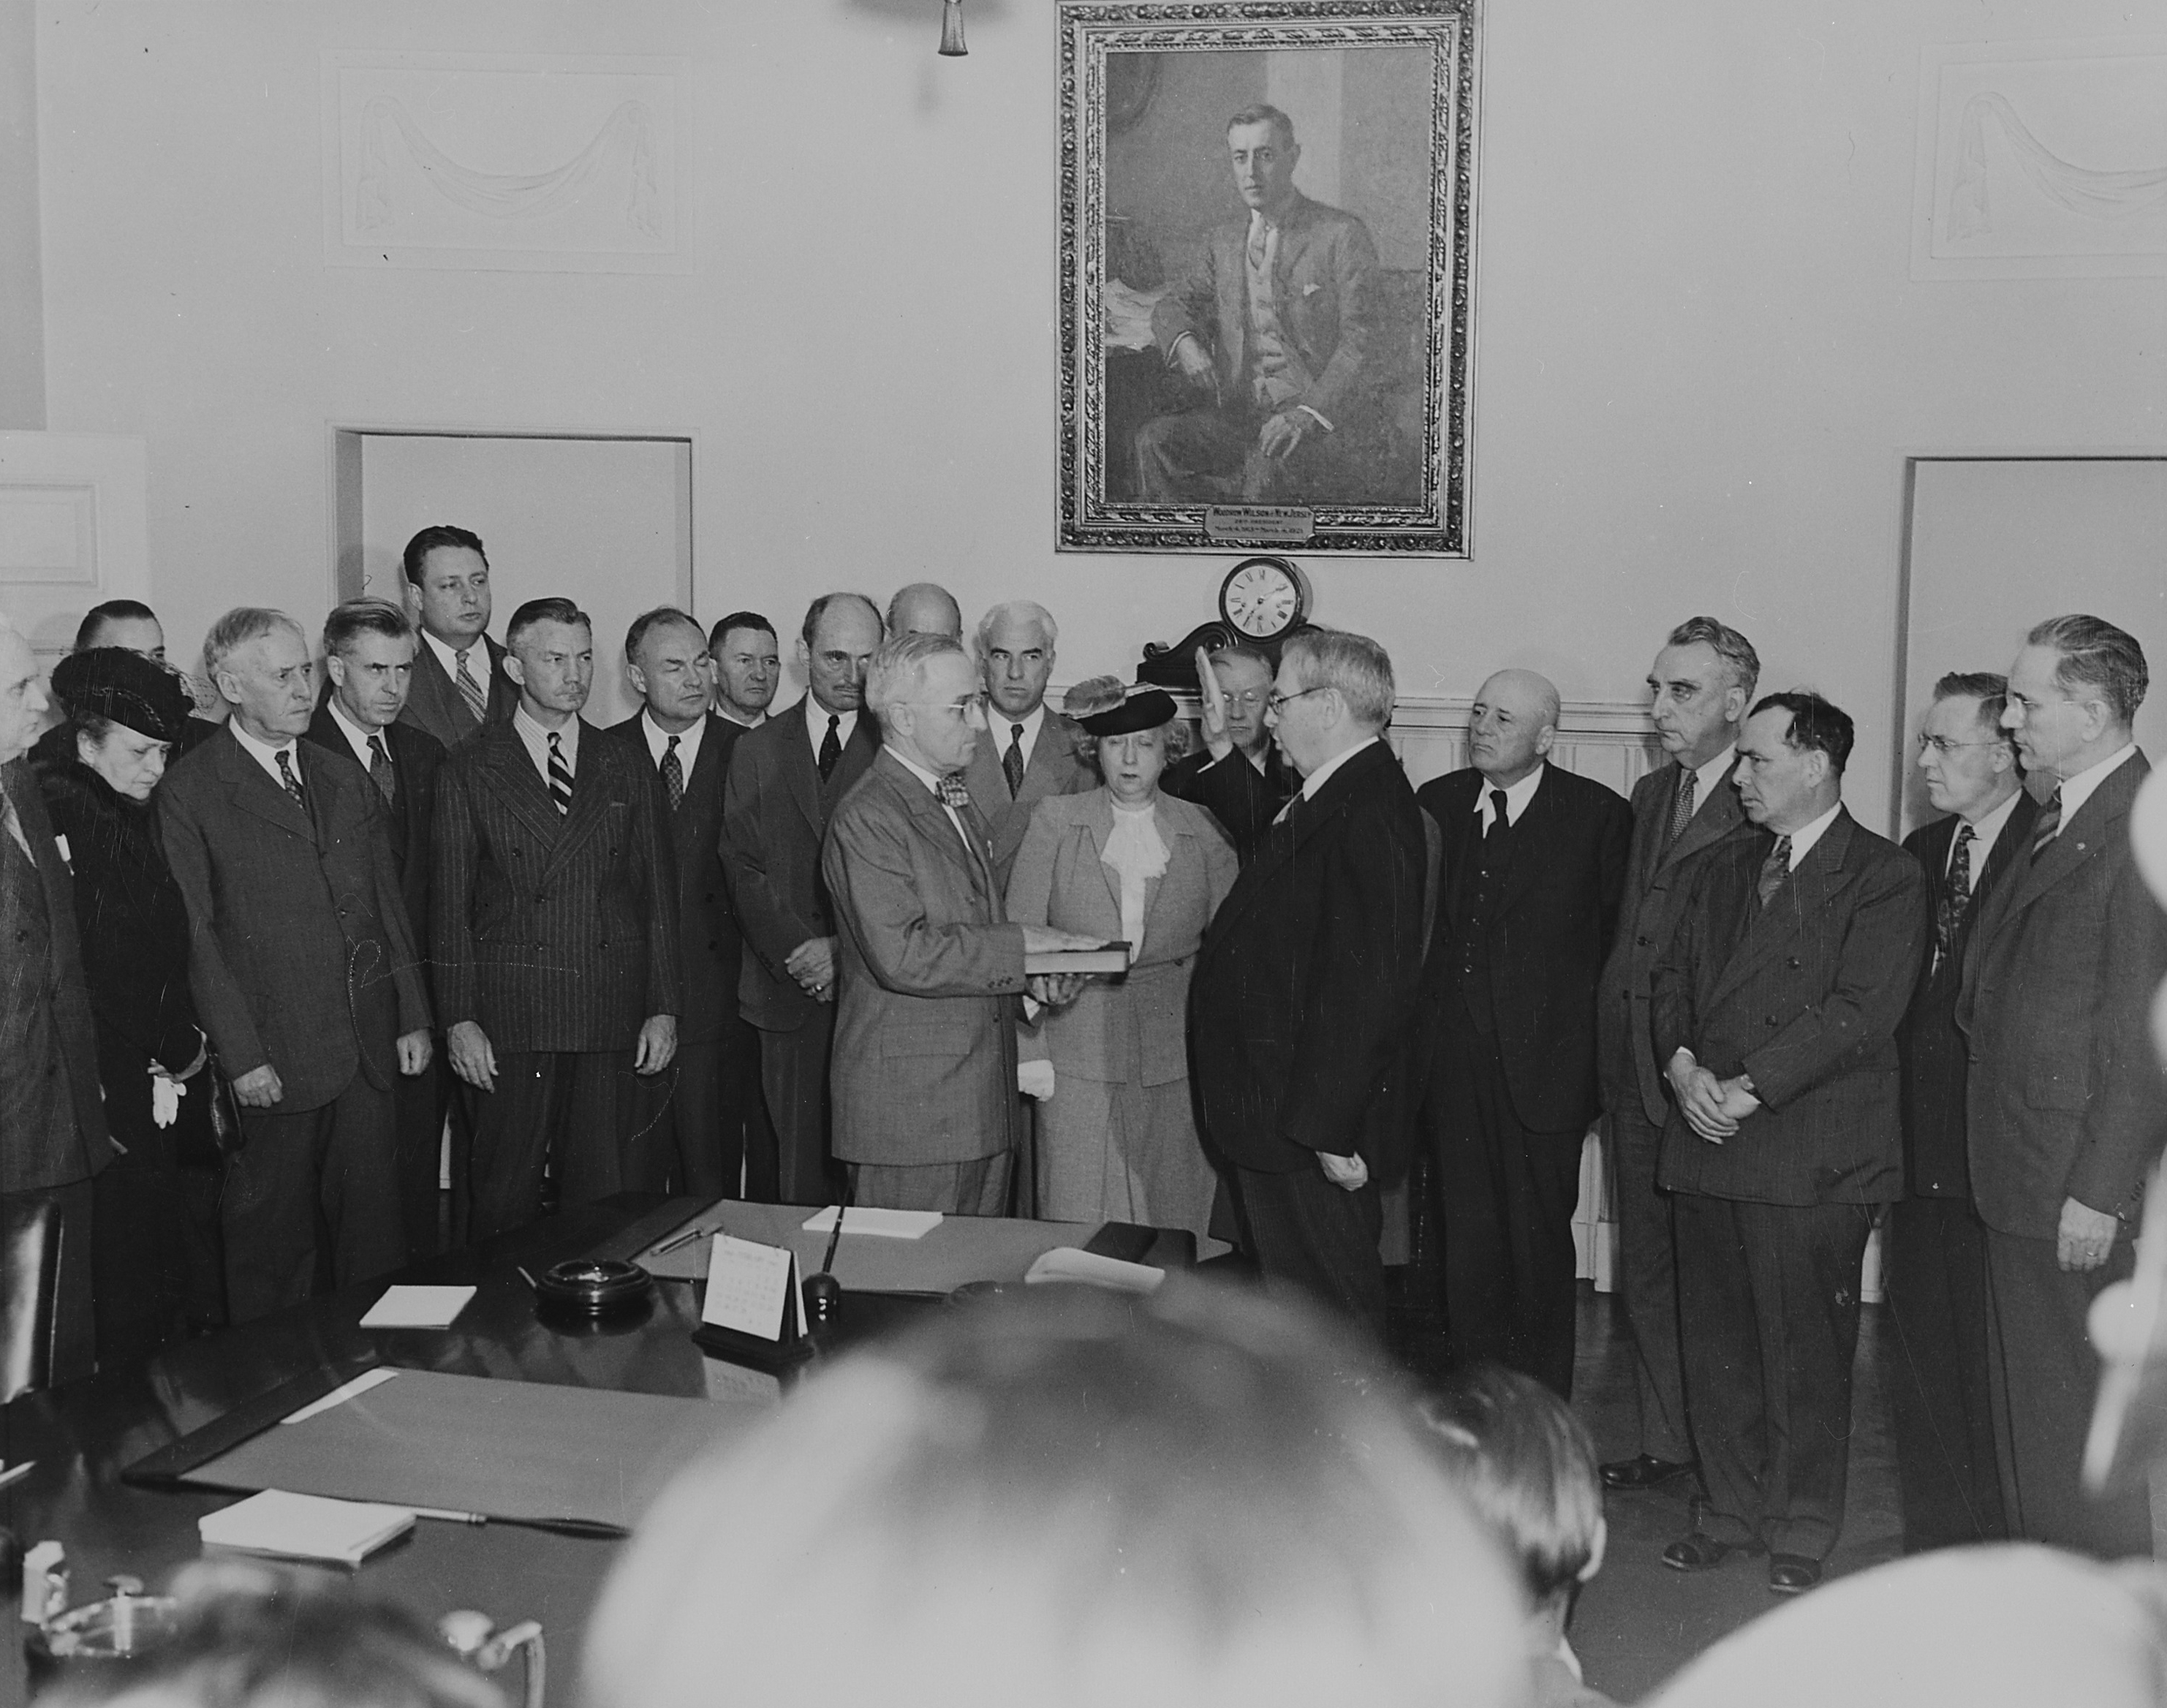 Truman Taking the Oath of Office